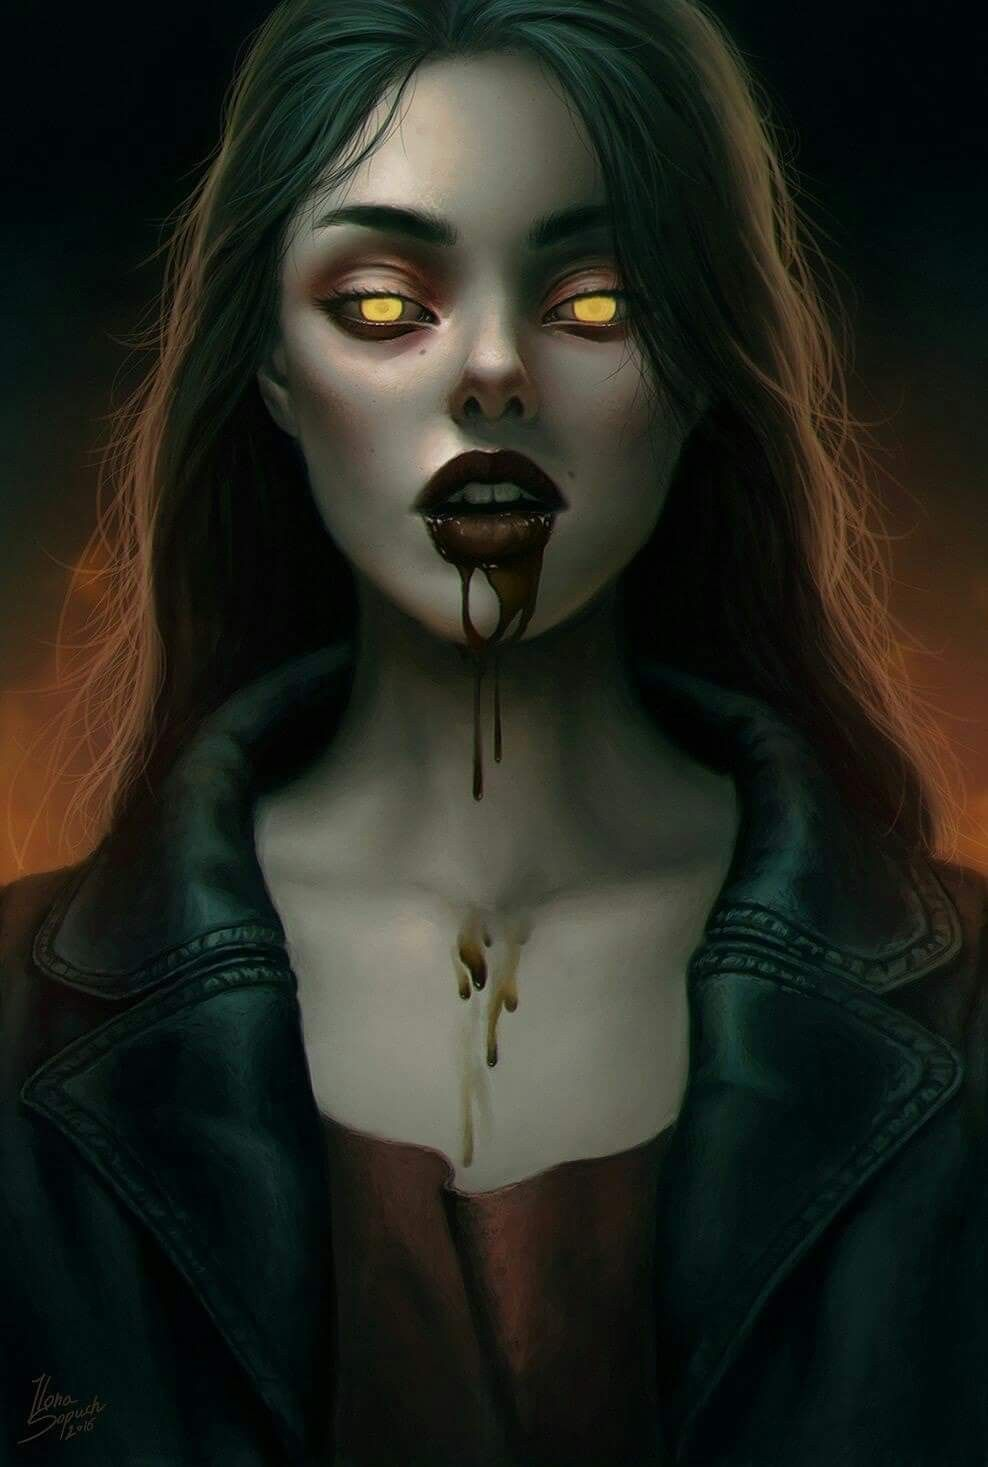 Vampire Art | Vampire art, Female vampire, Beautiful dark art